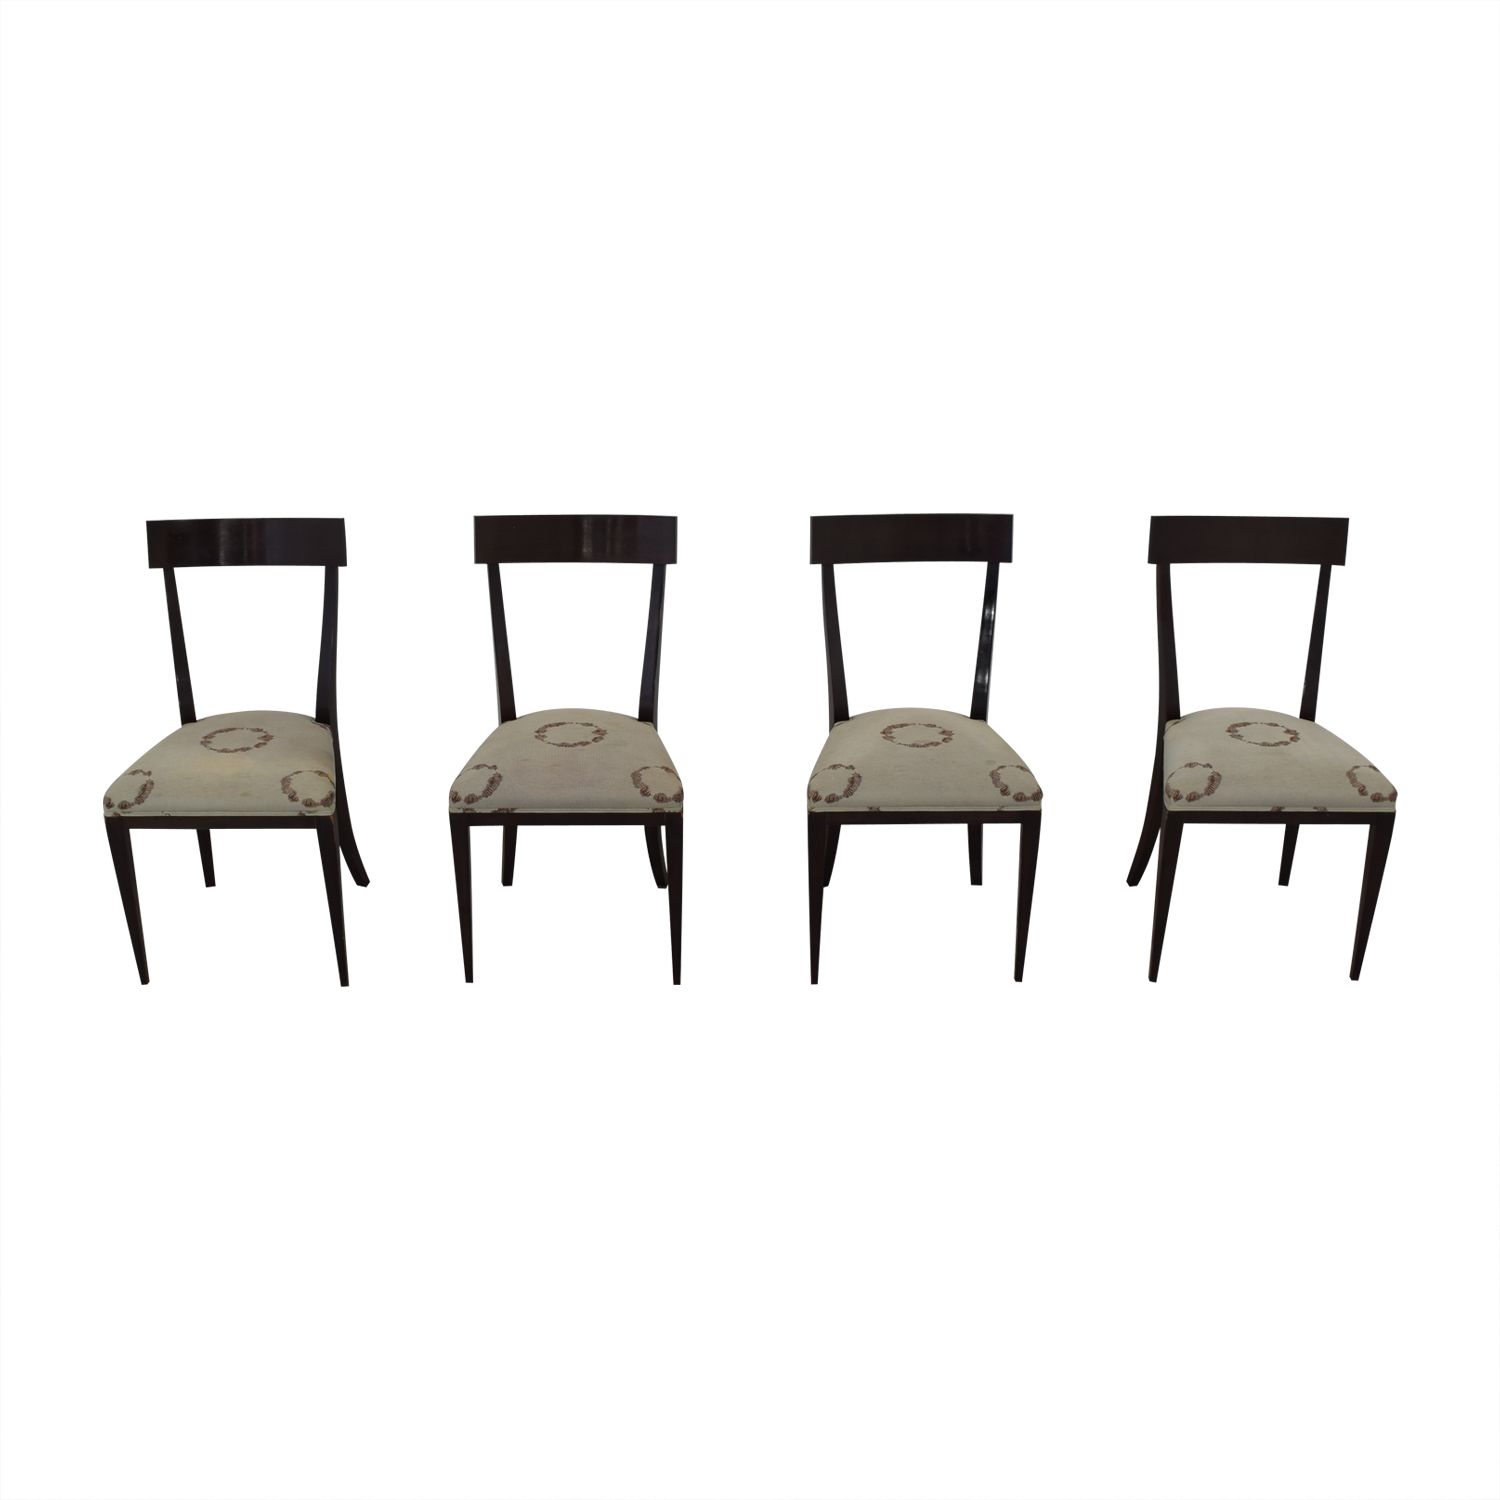 Annibale Colombo Dining Room Chairs / Dining Chairs